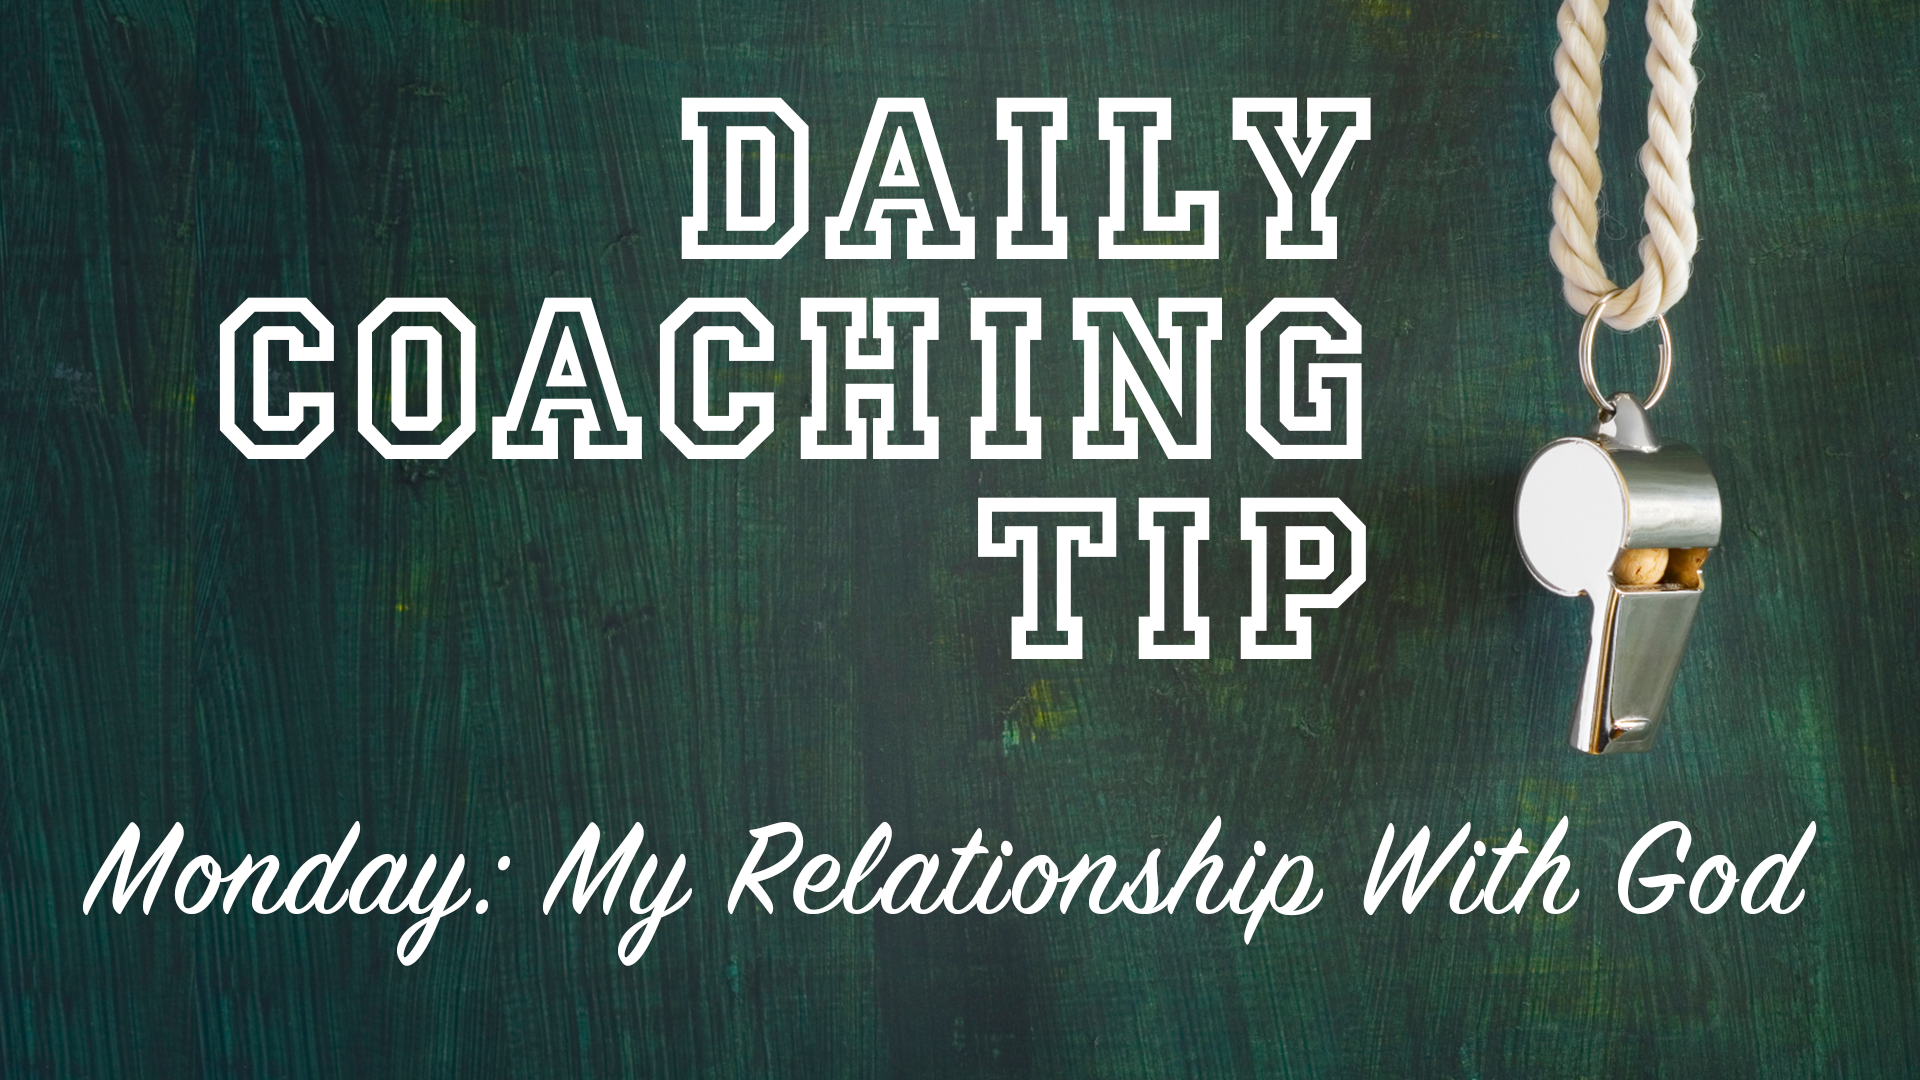 Daily Coaching Tip, Monday, February 29, 2016